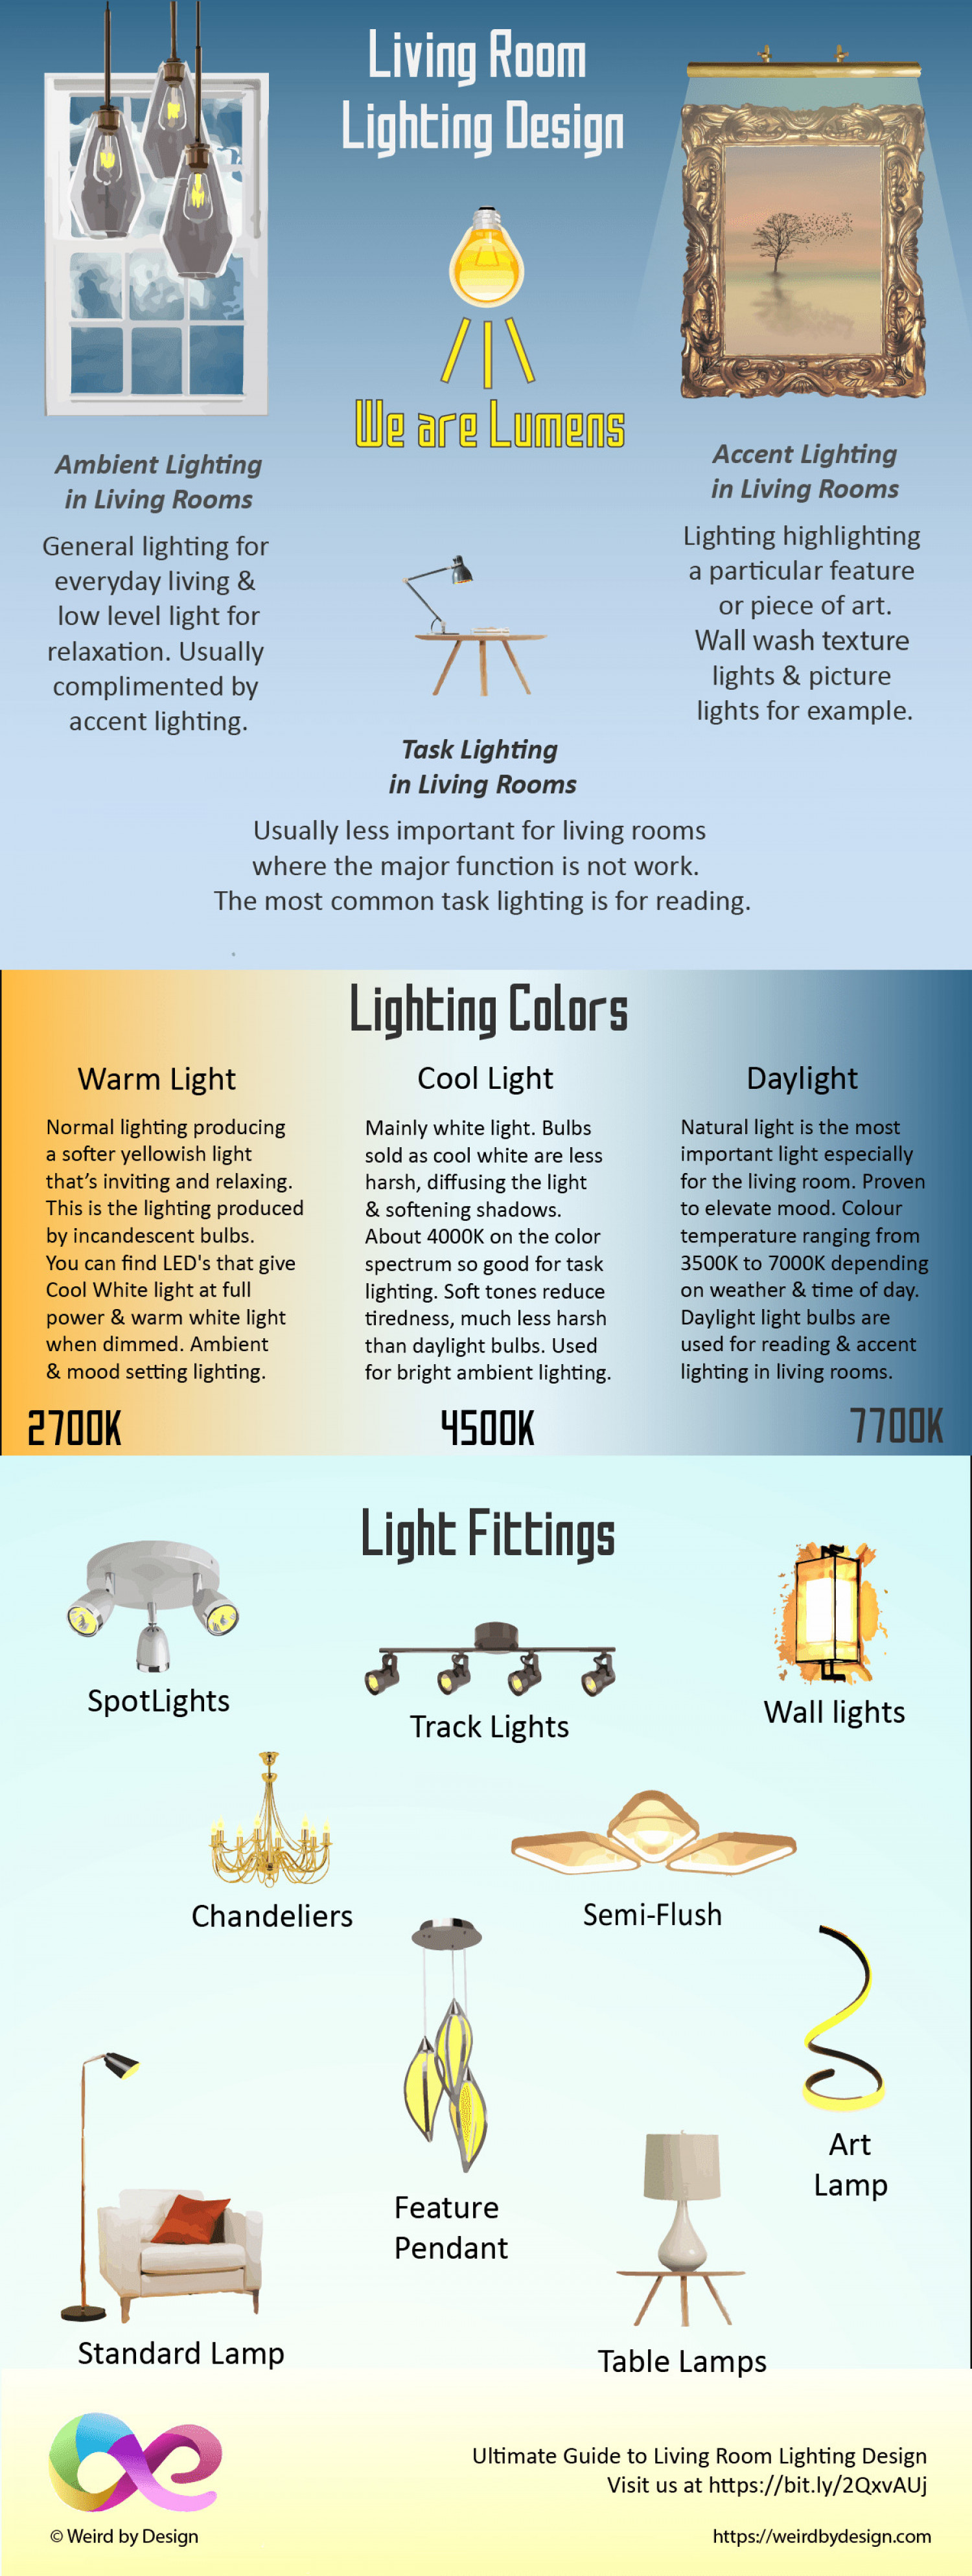 Living Room Lighting Design Infographic